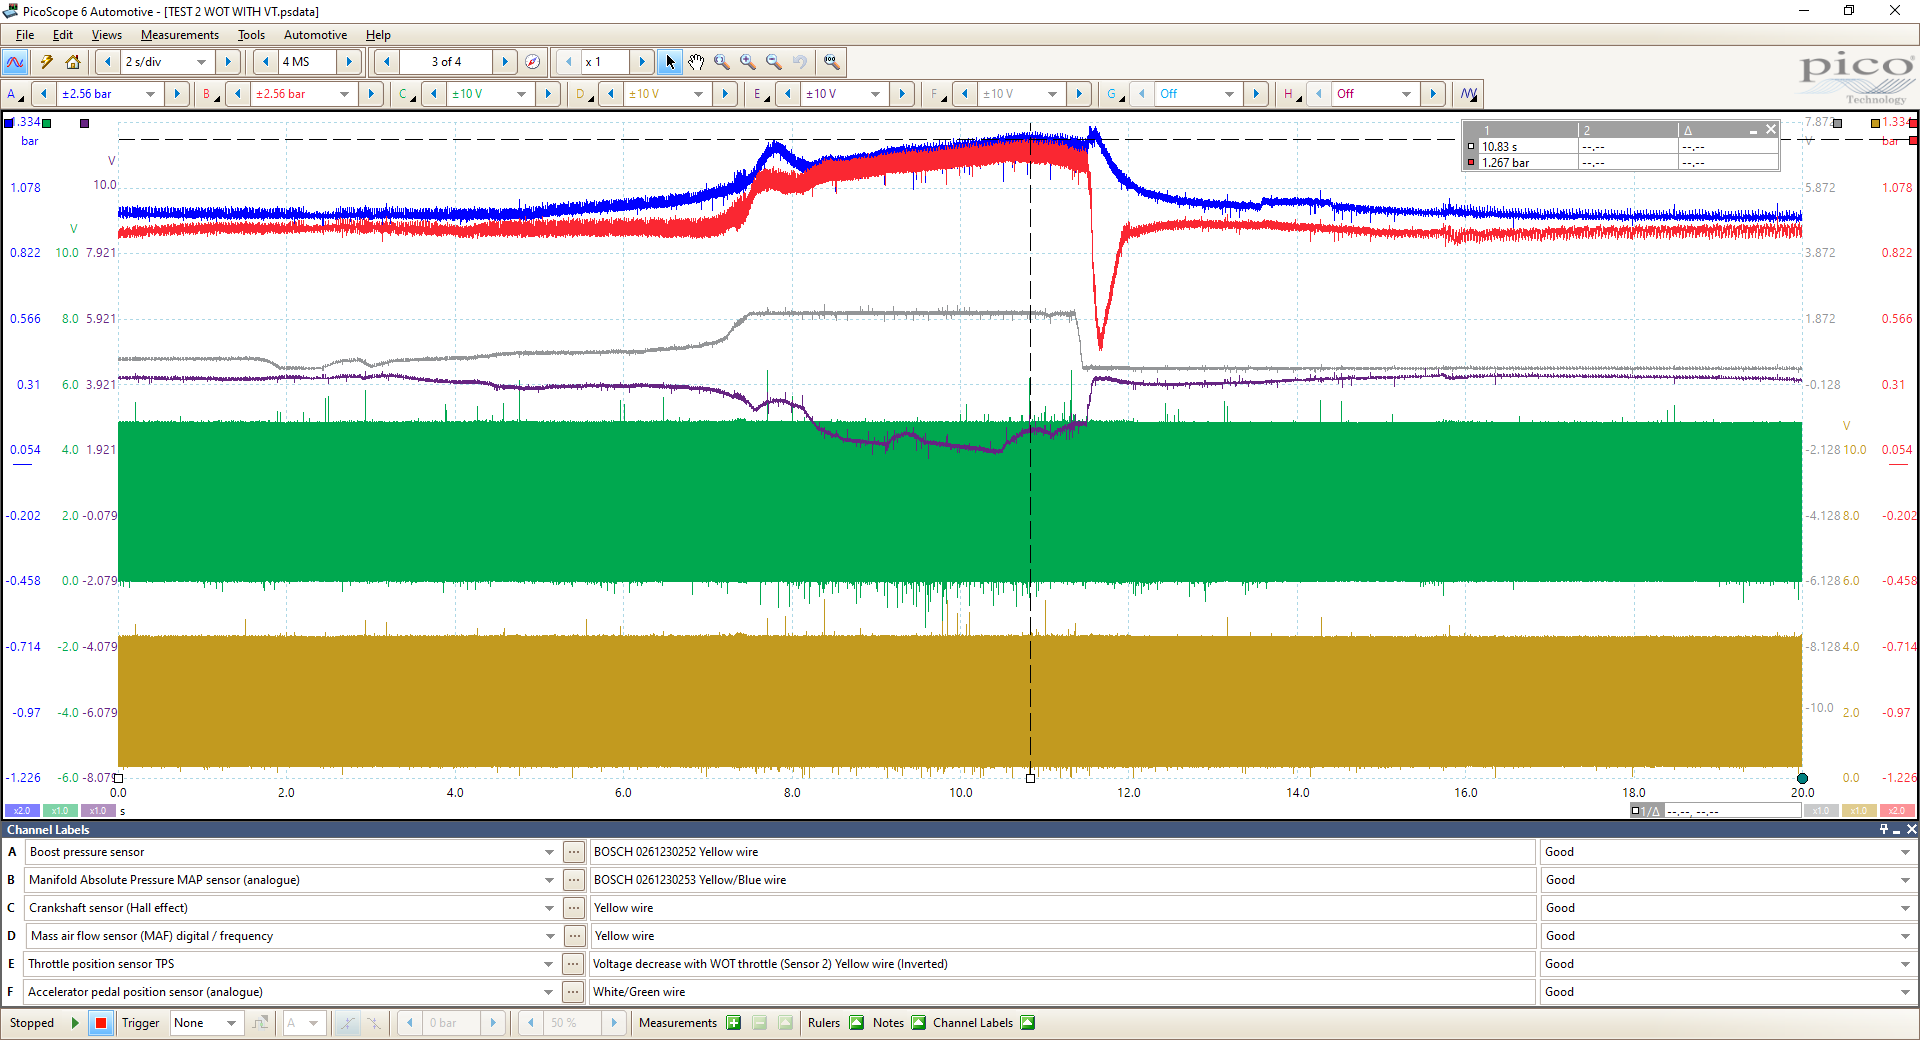 Screenshot from PicoScope 6 Automotive with linear equation Y=0.512x+0 (custom probe) applied to both Channel A and B.